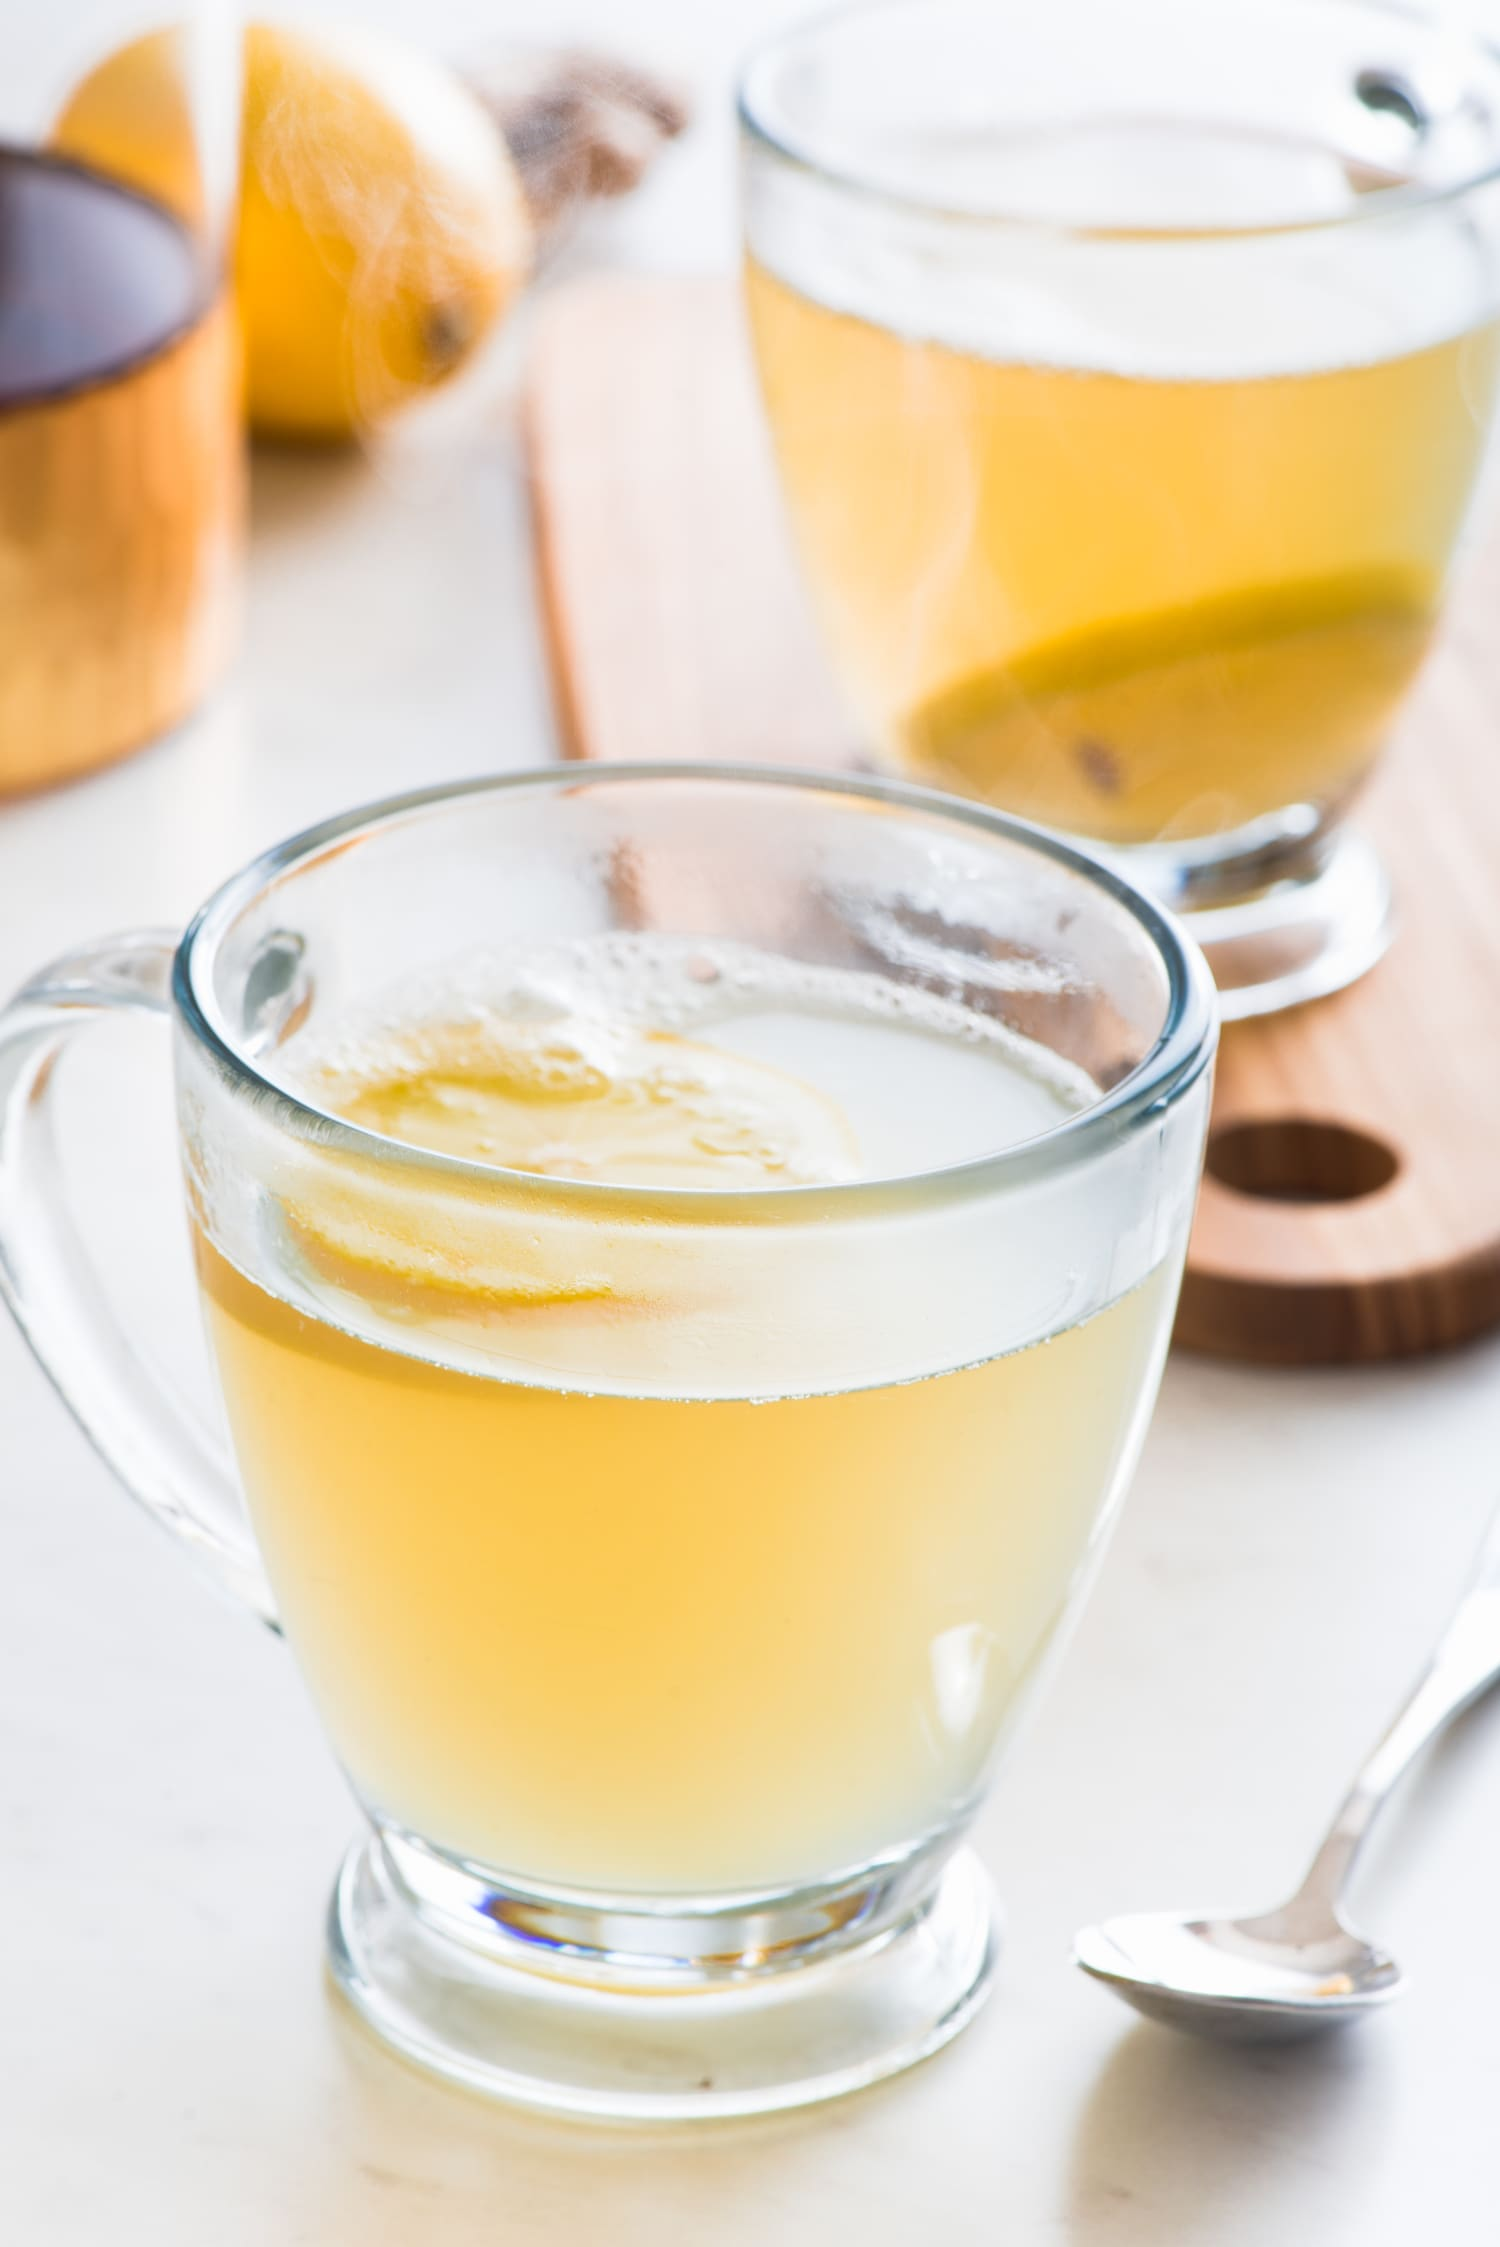 10 Warm Drinks That'll Soothe Your Throat During Cold Season